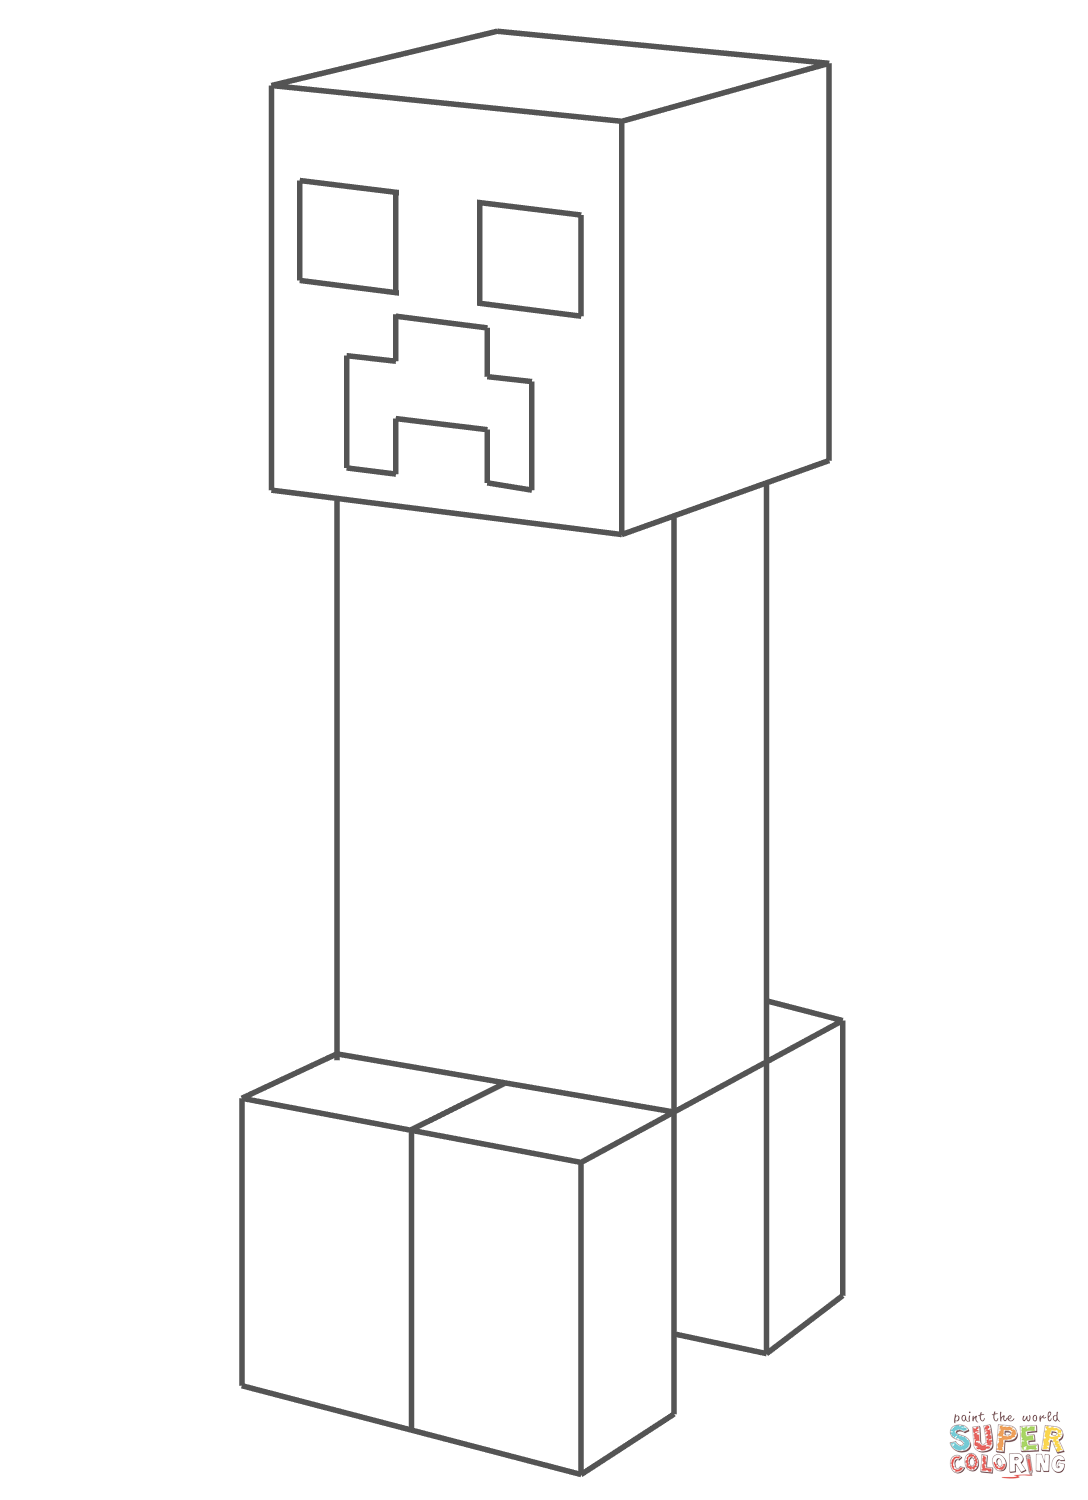 creeper coloring pages creeper coloring page free printable coloring pages creeper pages coloring